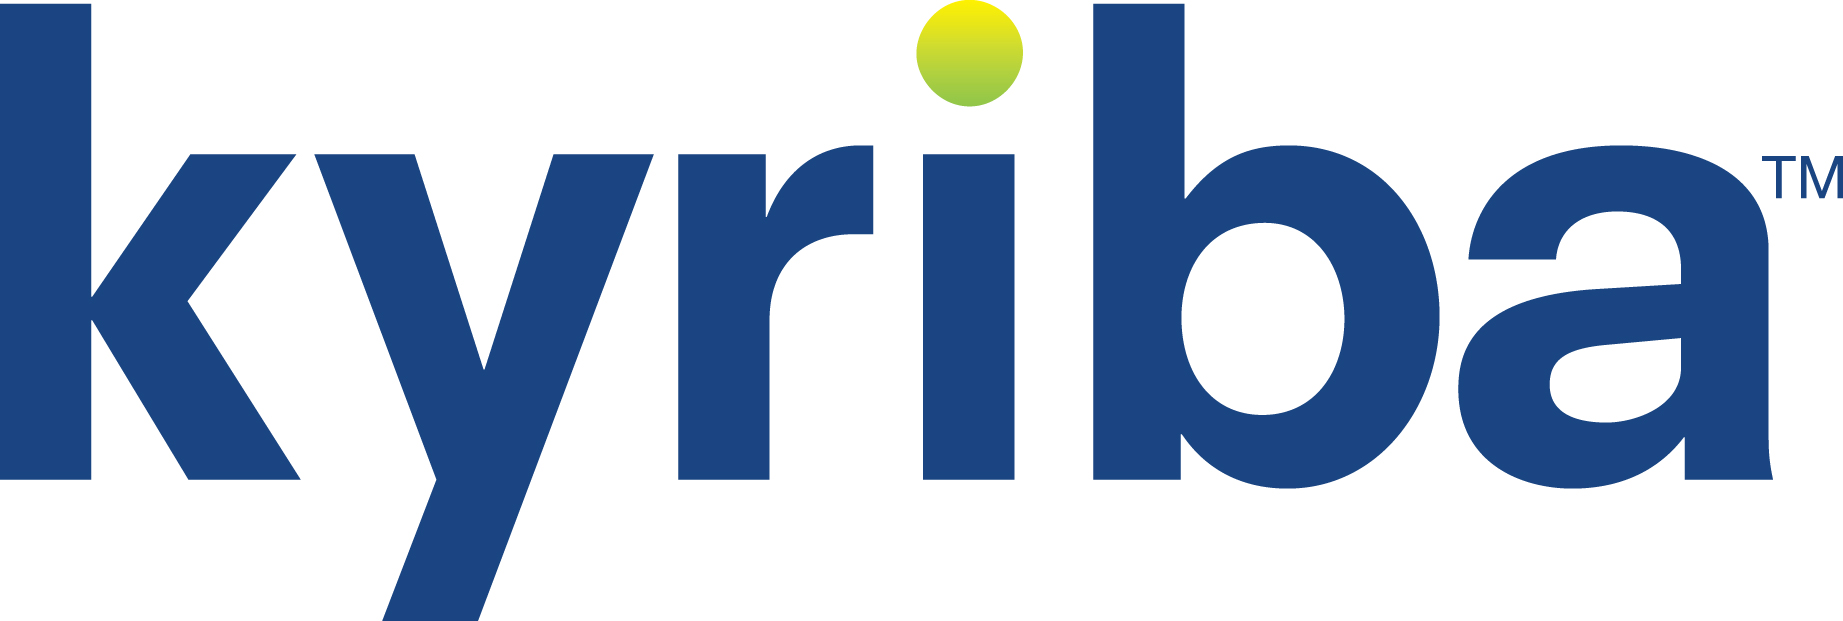 Strategic Cash-Management Culture at EmblemHealth Improved by Kyriba's Solutions